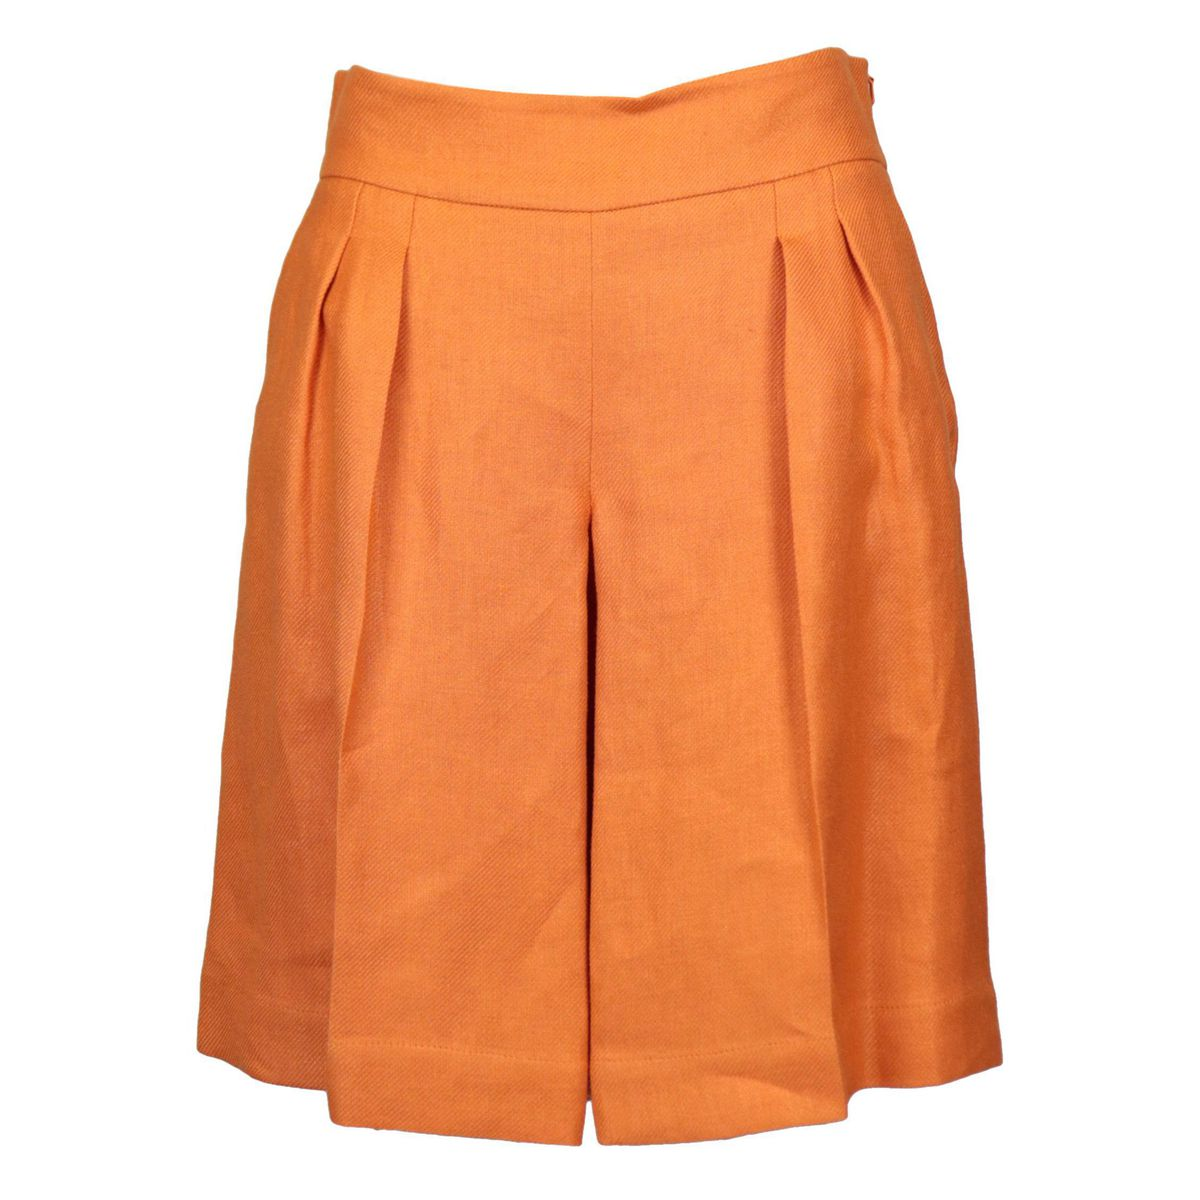 ASIAGO linen shorts with folds Orange MAX MARA STUDIO